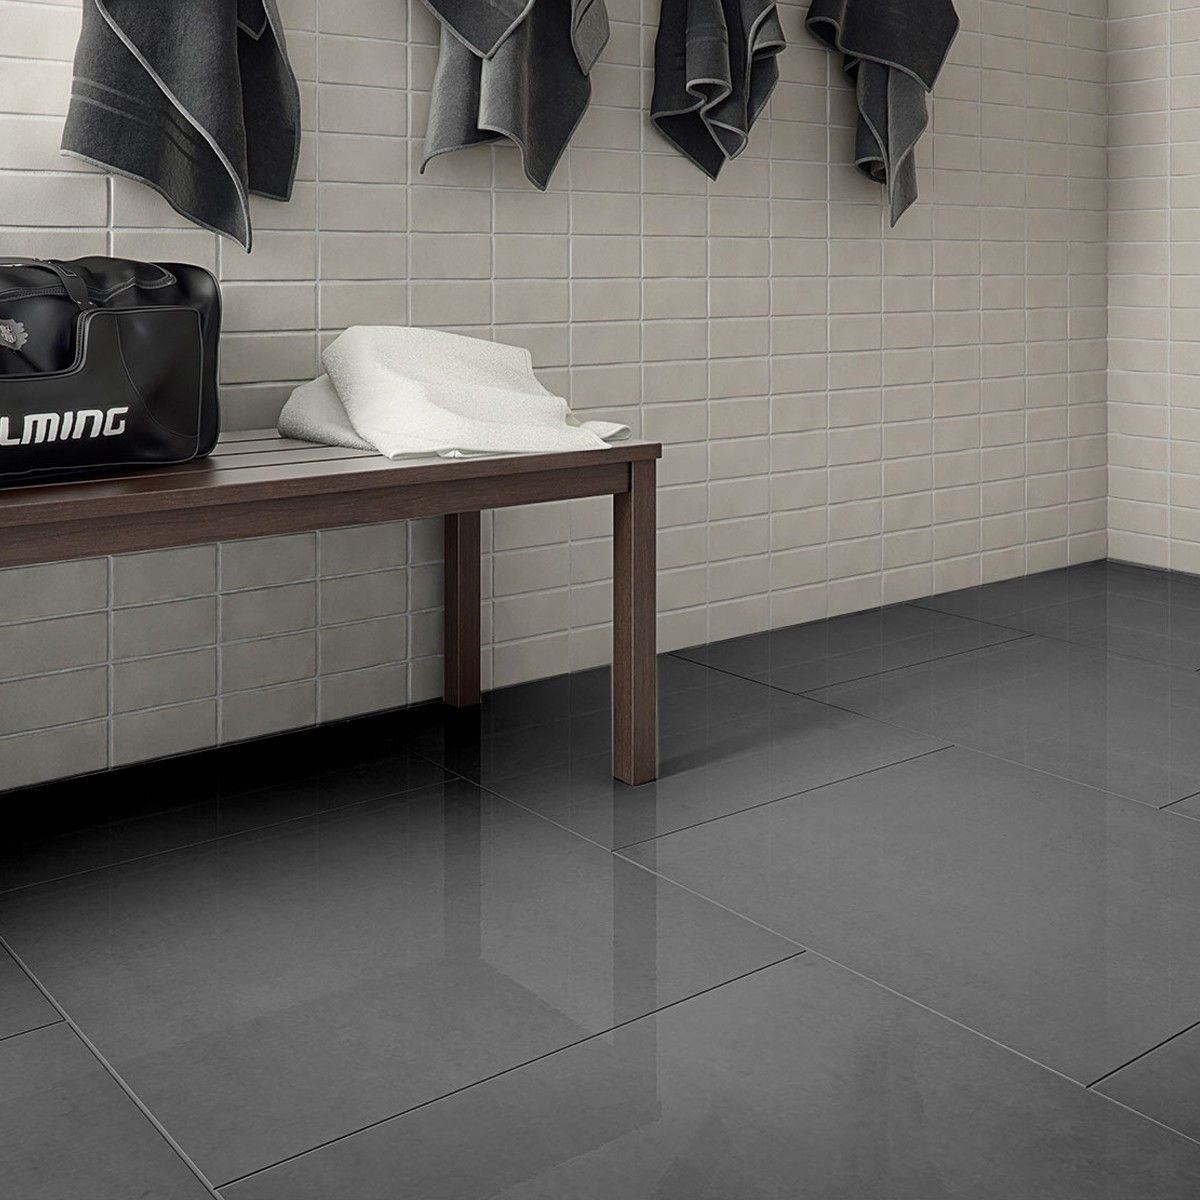 Polished Kitchen Floor Tiles Rooms With Gray Tile Floors Lounge Dark Grey Porcelain Floor